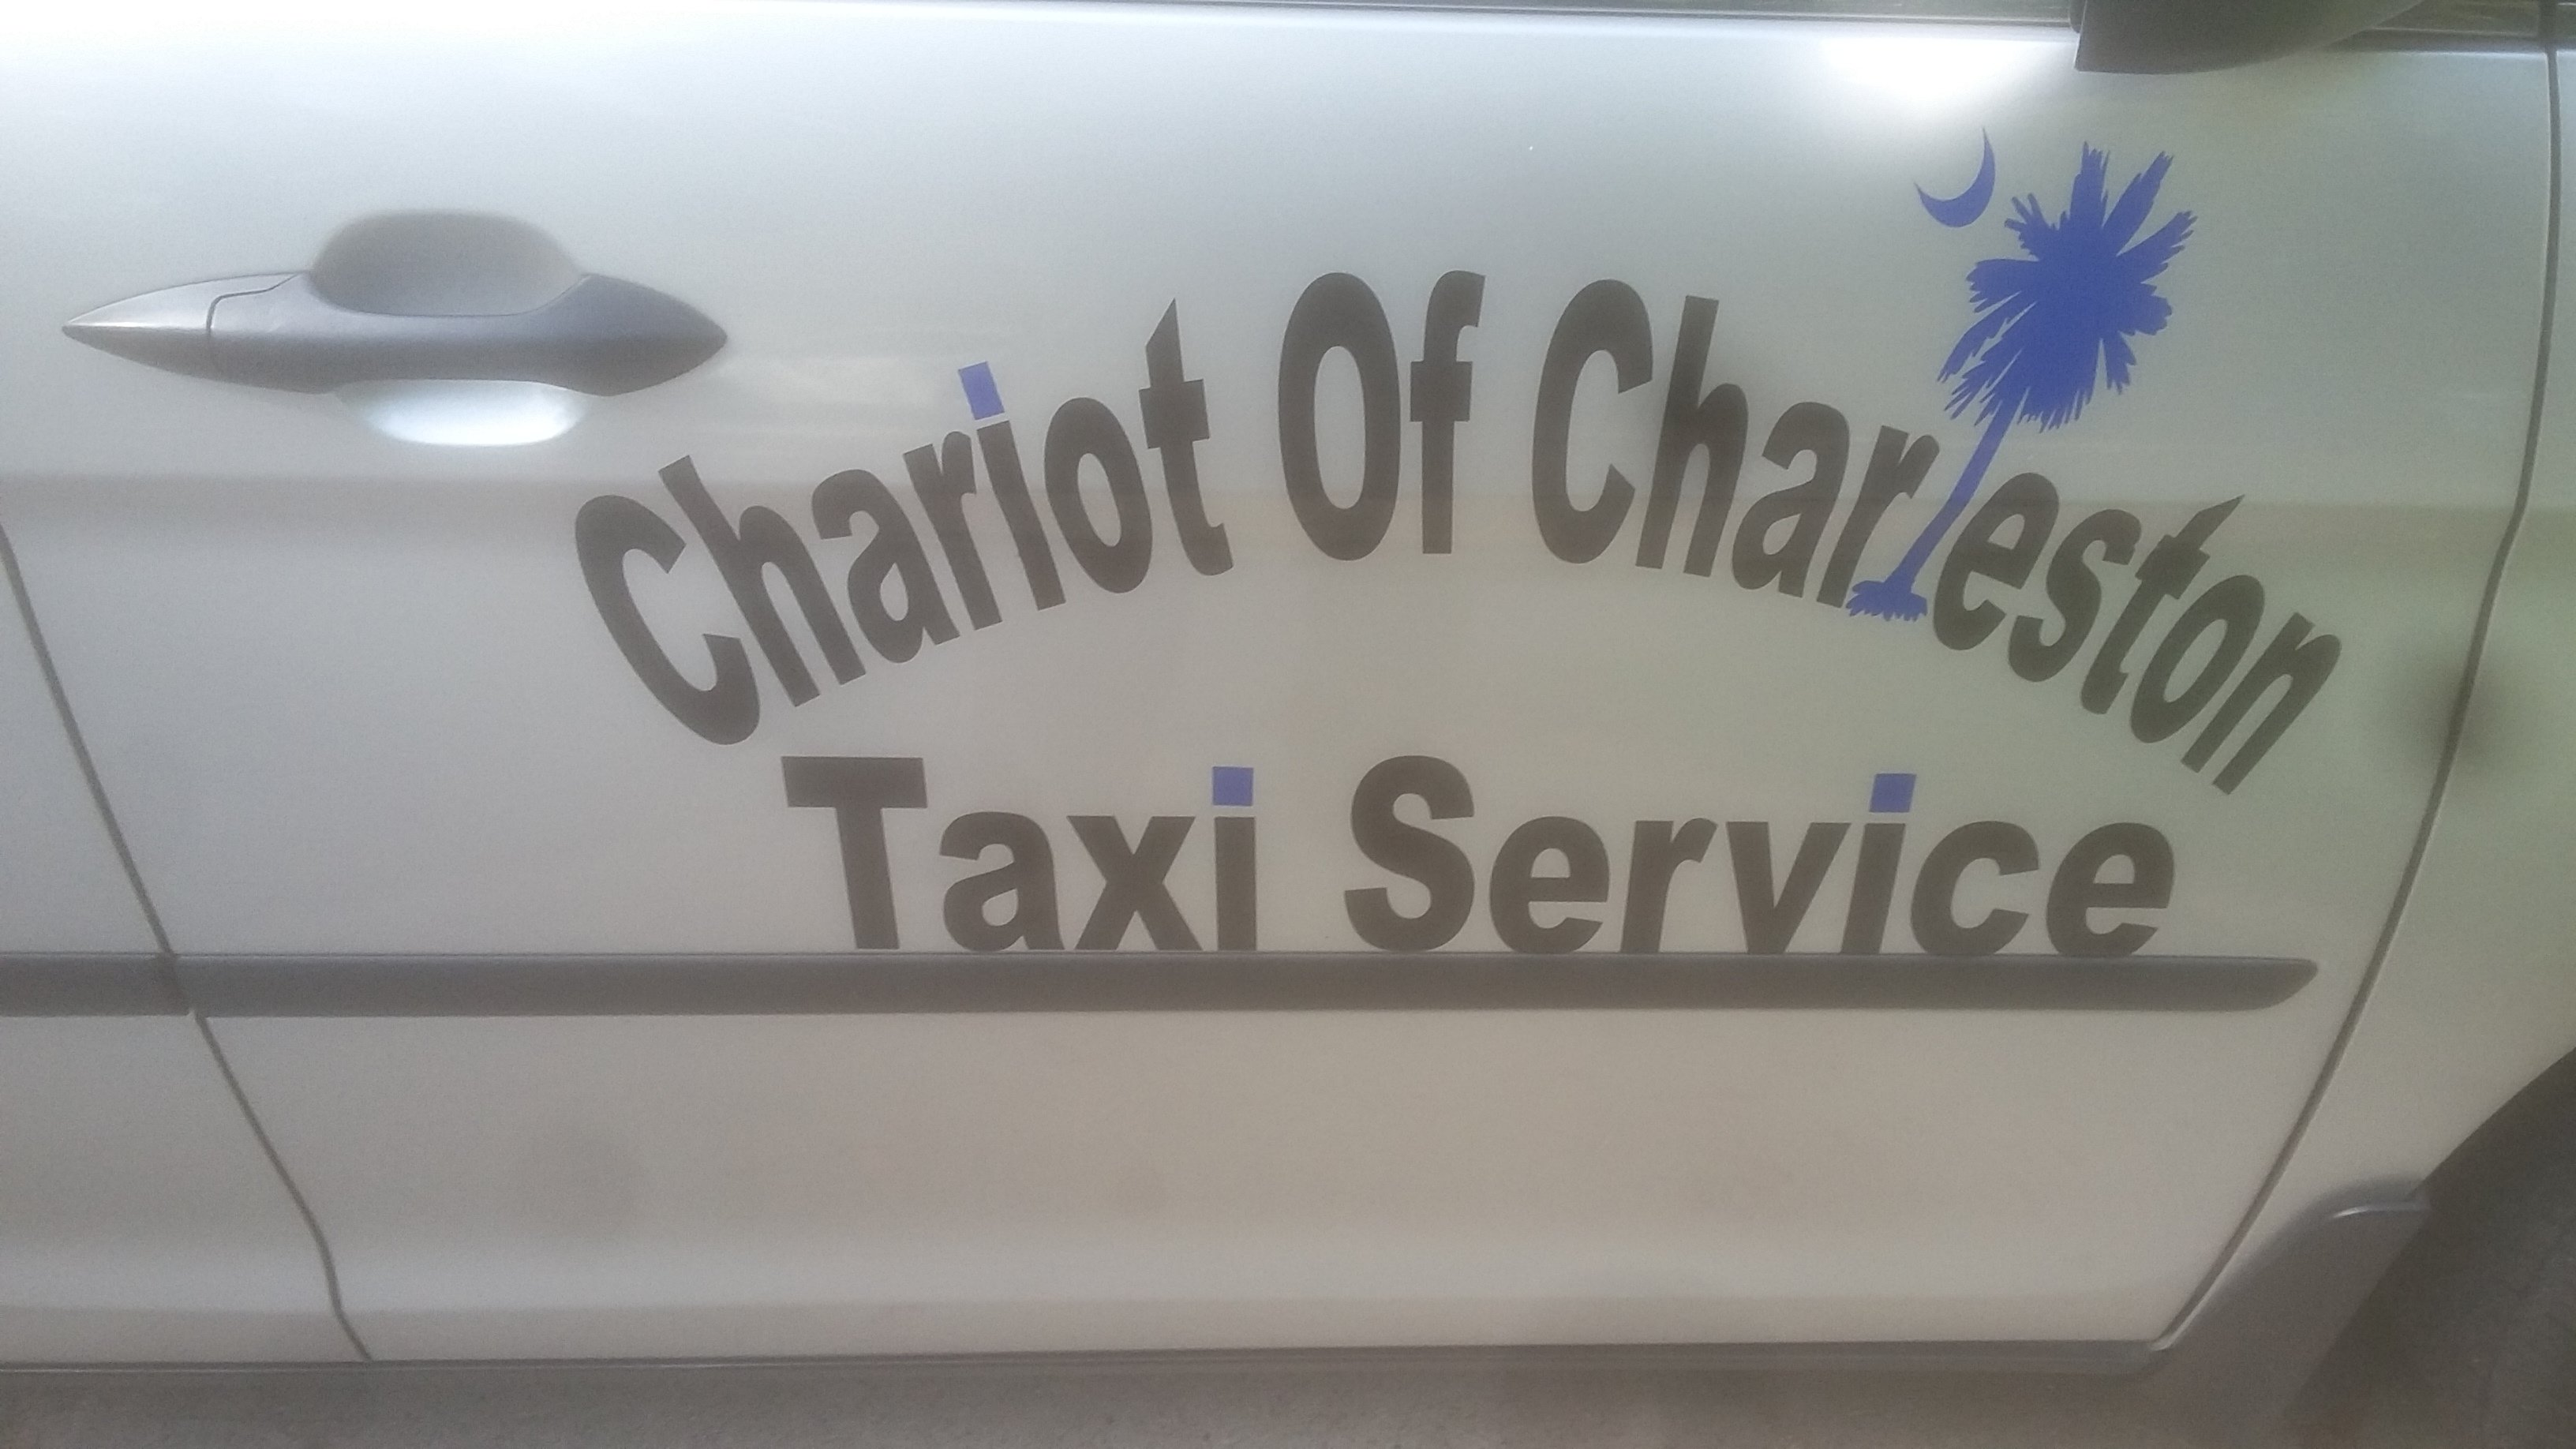 Chariots of Charleston Taxi Service - Taxi - Kiawah Island, SC Secondary Image